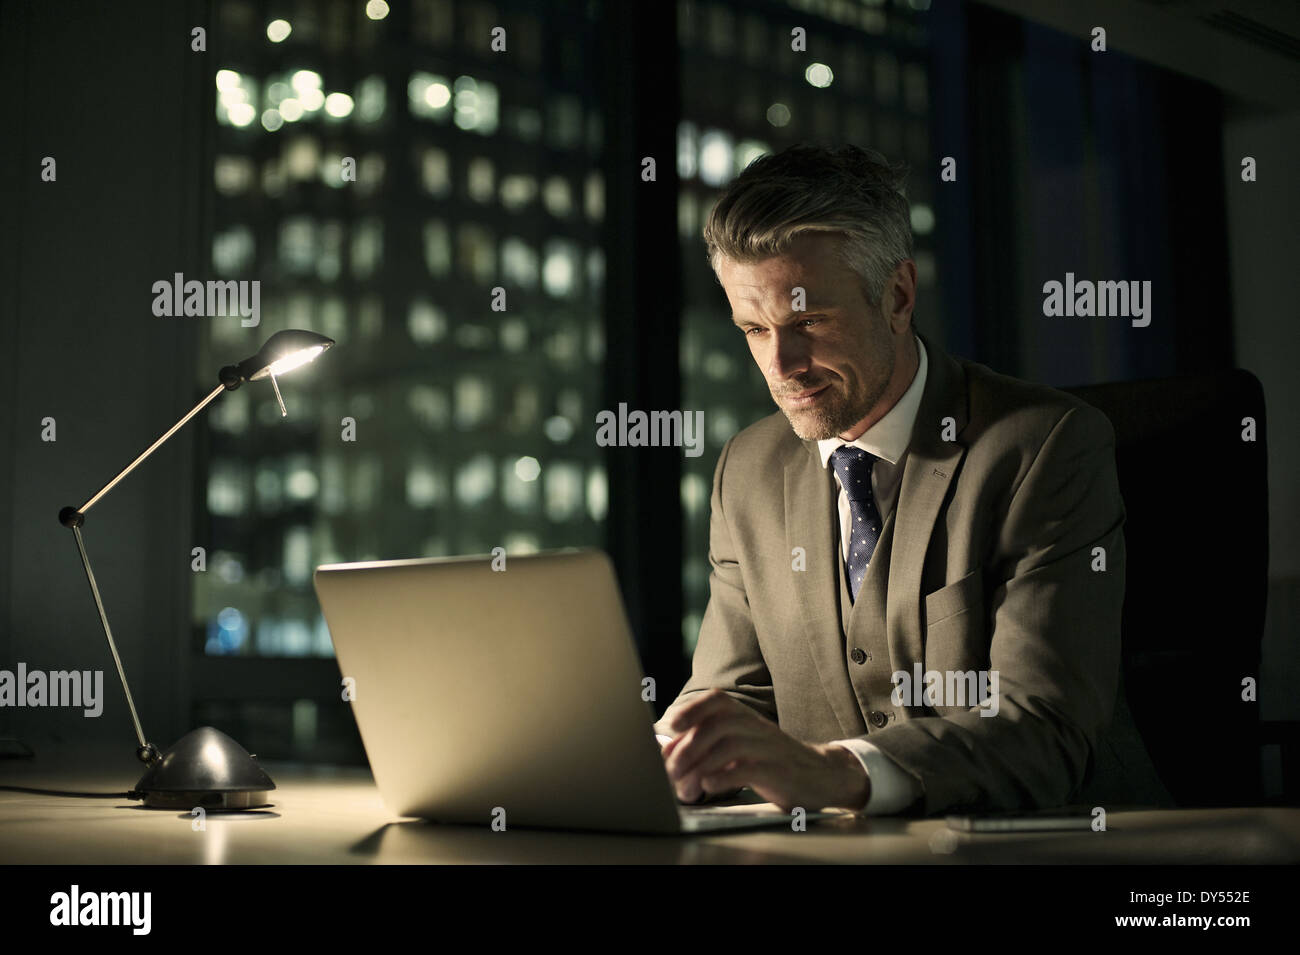 Businessman working late in office on laptop - Stock Image